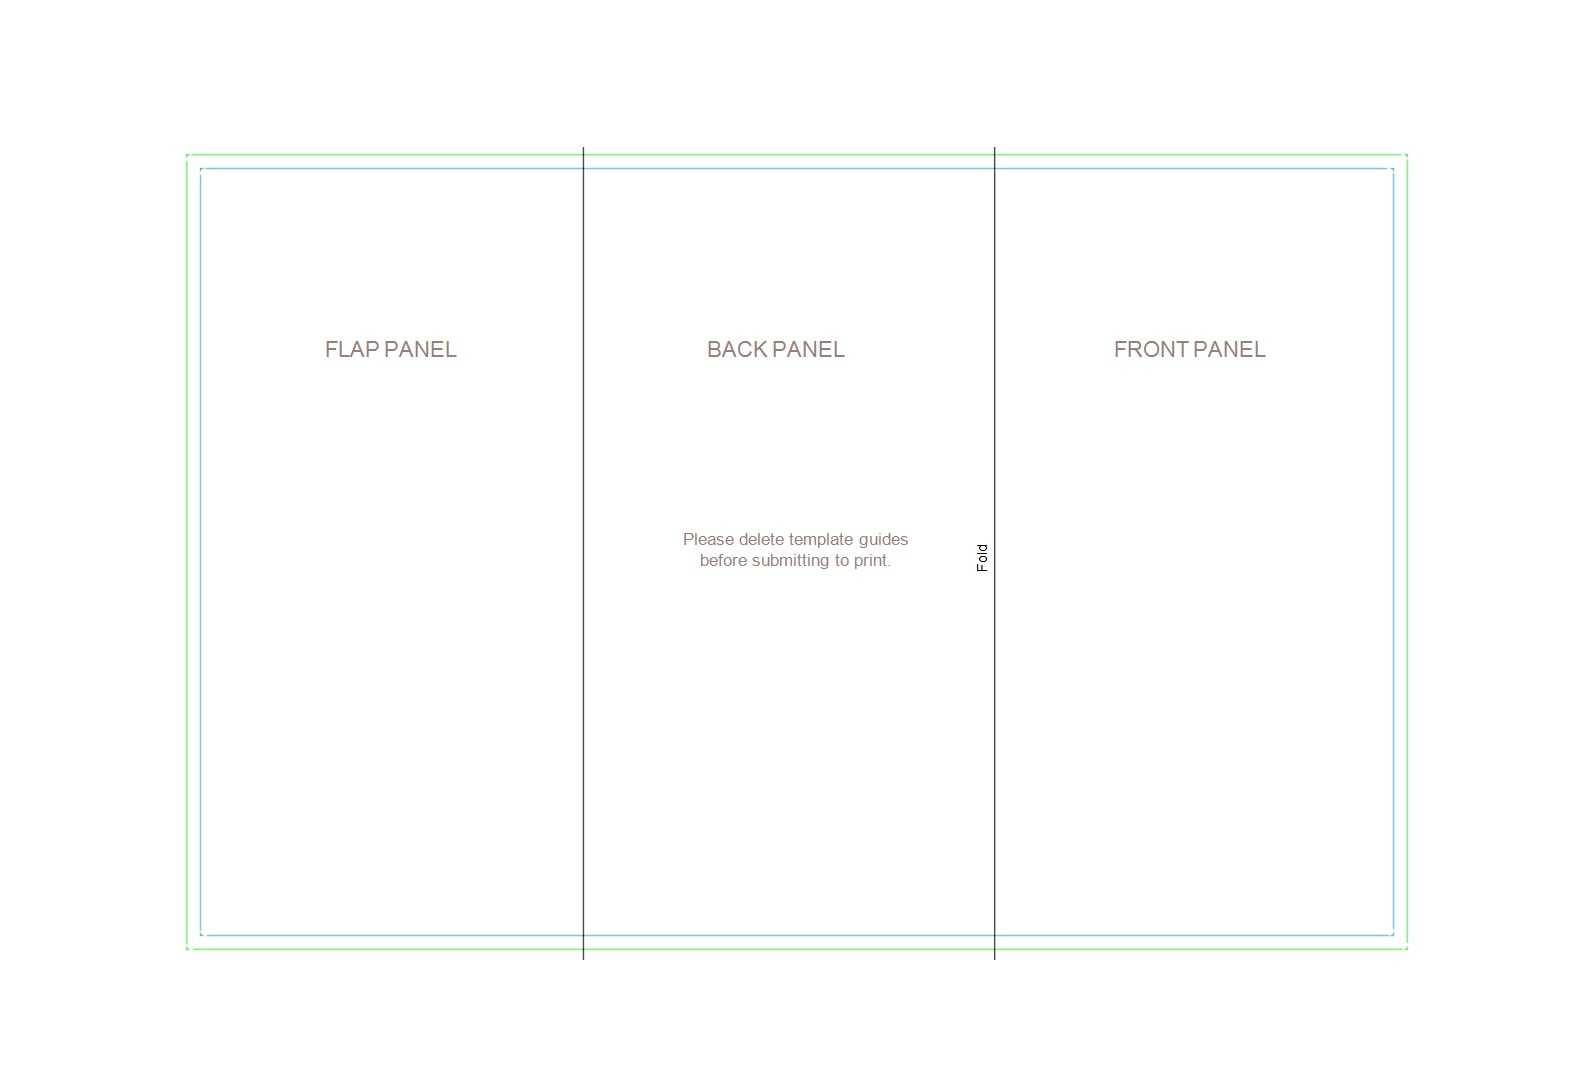 50 Free Pamphlet Templates [Word / Google Docs] ᐅ Template Lab Within Google Docs Brochure Template